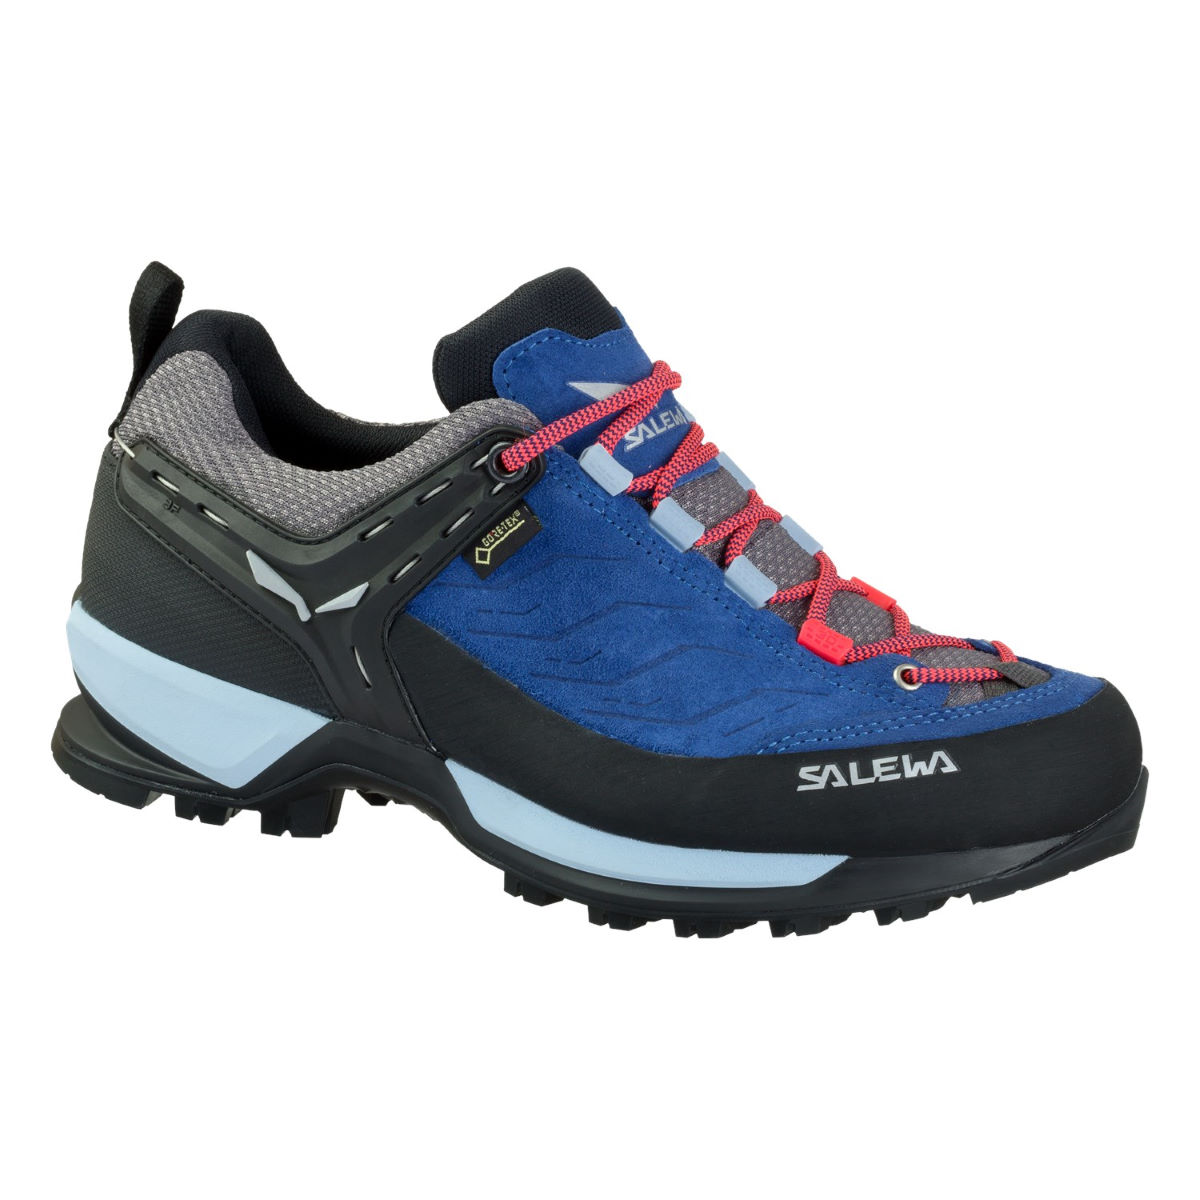 Salewa Women's MTN Trainer GTX Shoes - Zapatillas